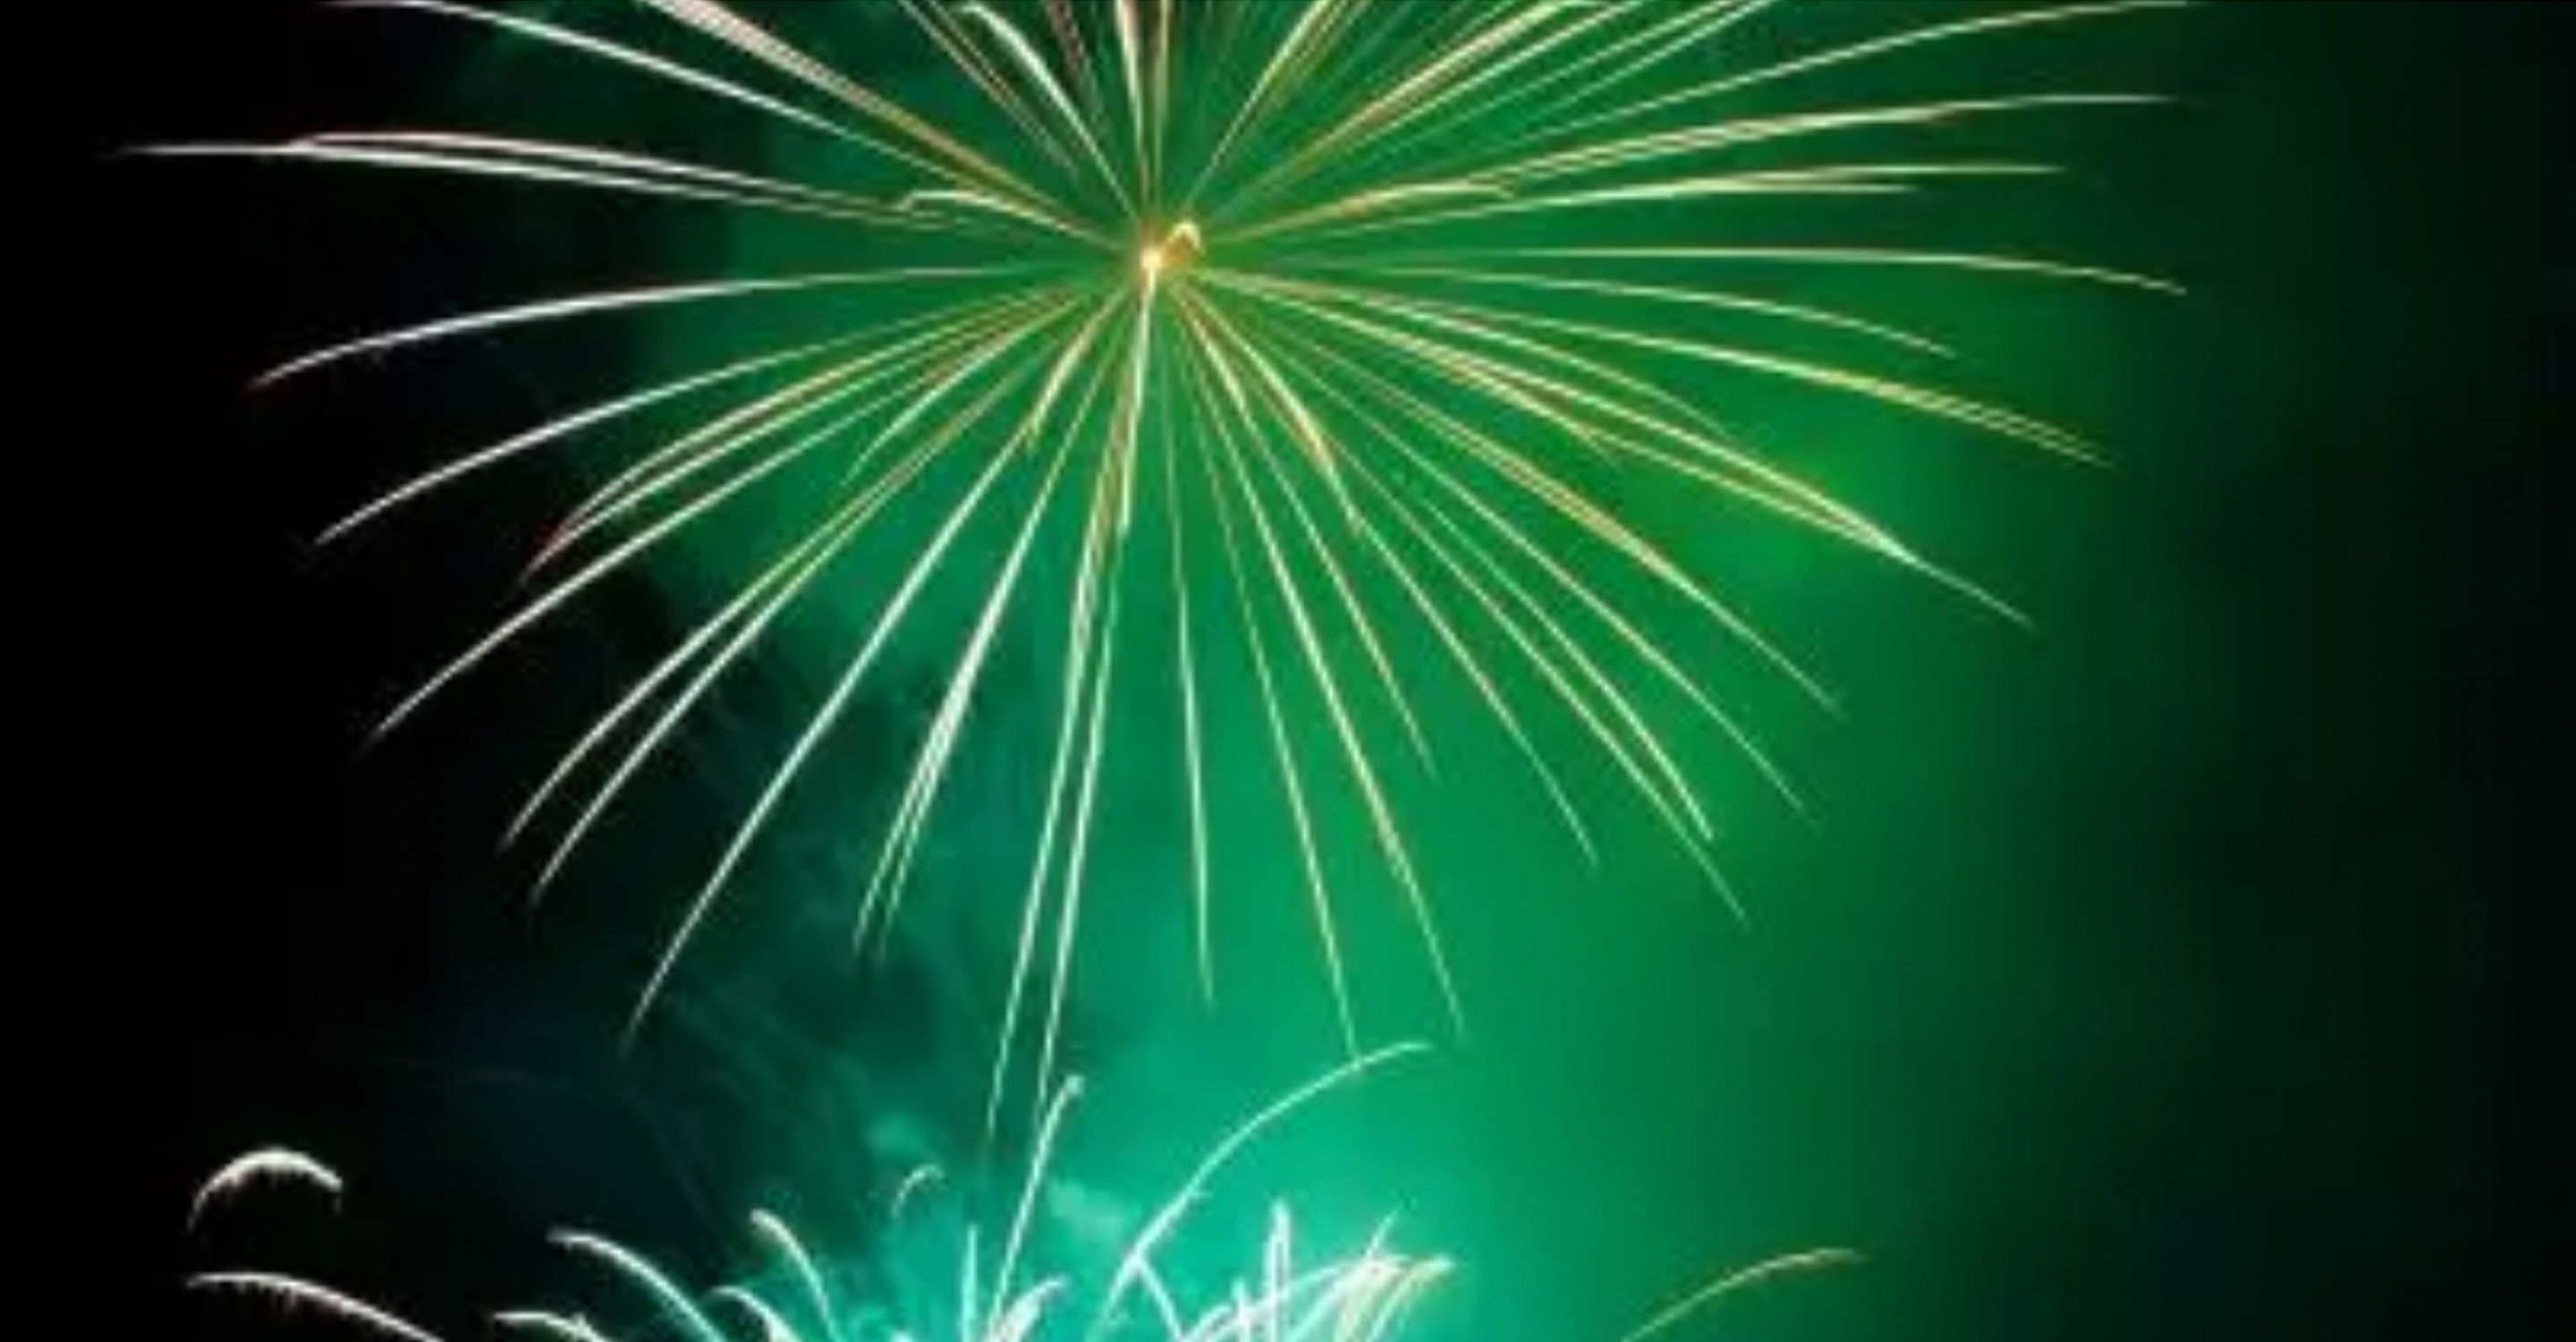 Do green crackers reduce India's air pollution during Diwali?